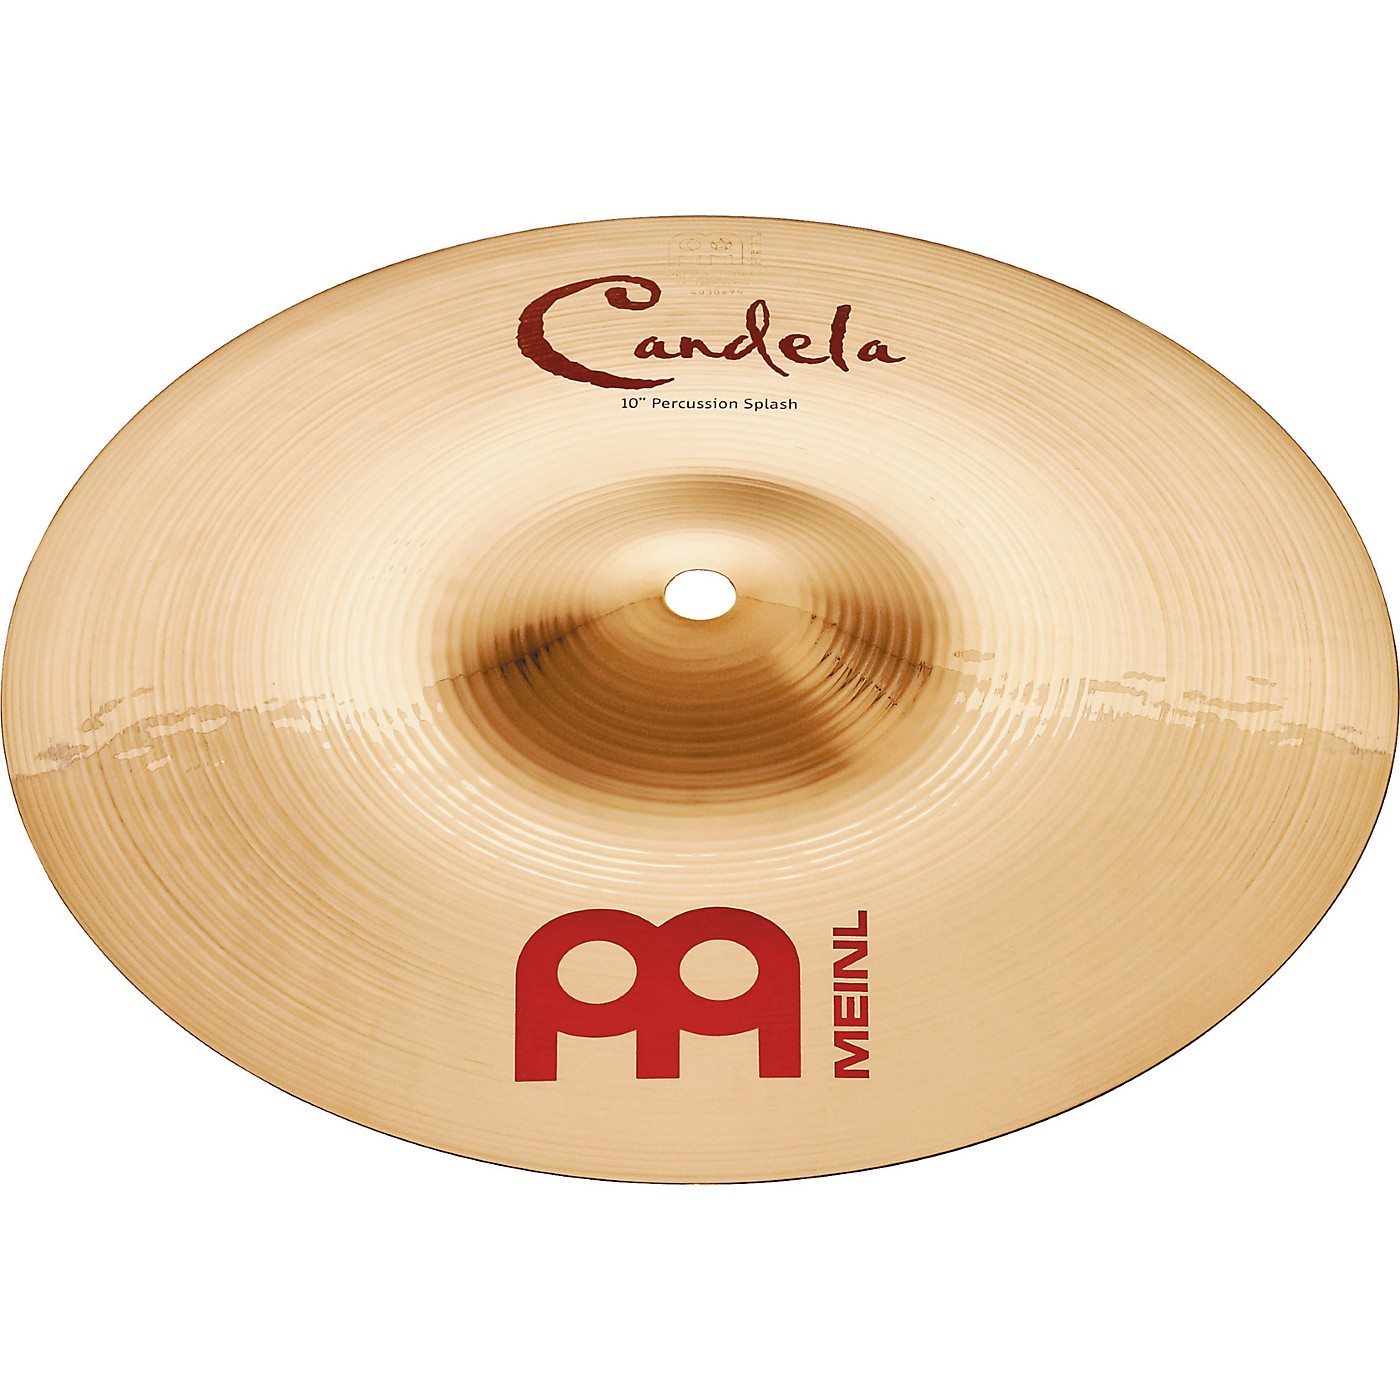 Meinl Candela Series Percussion Splash thumbnail